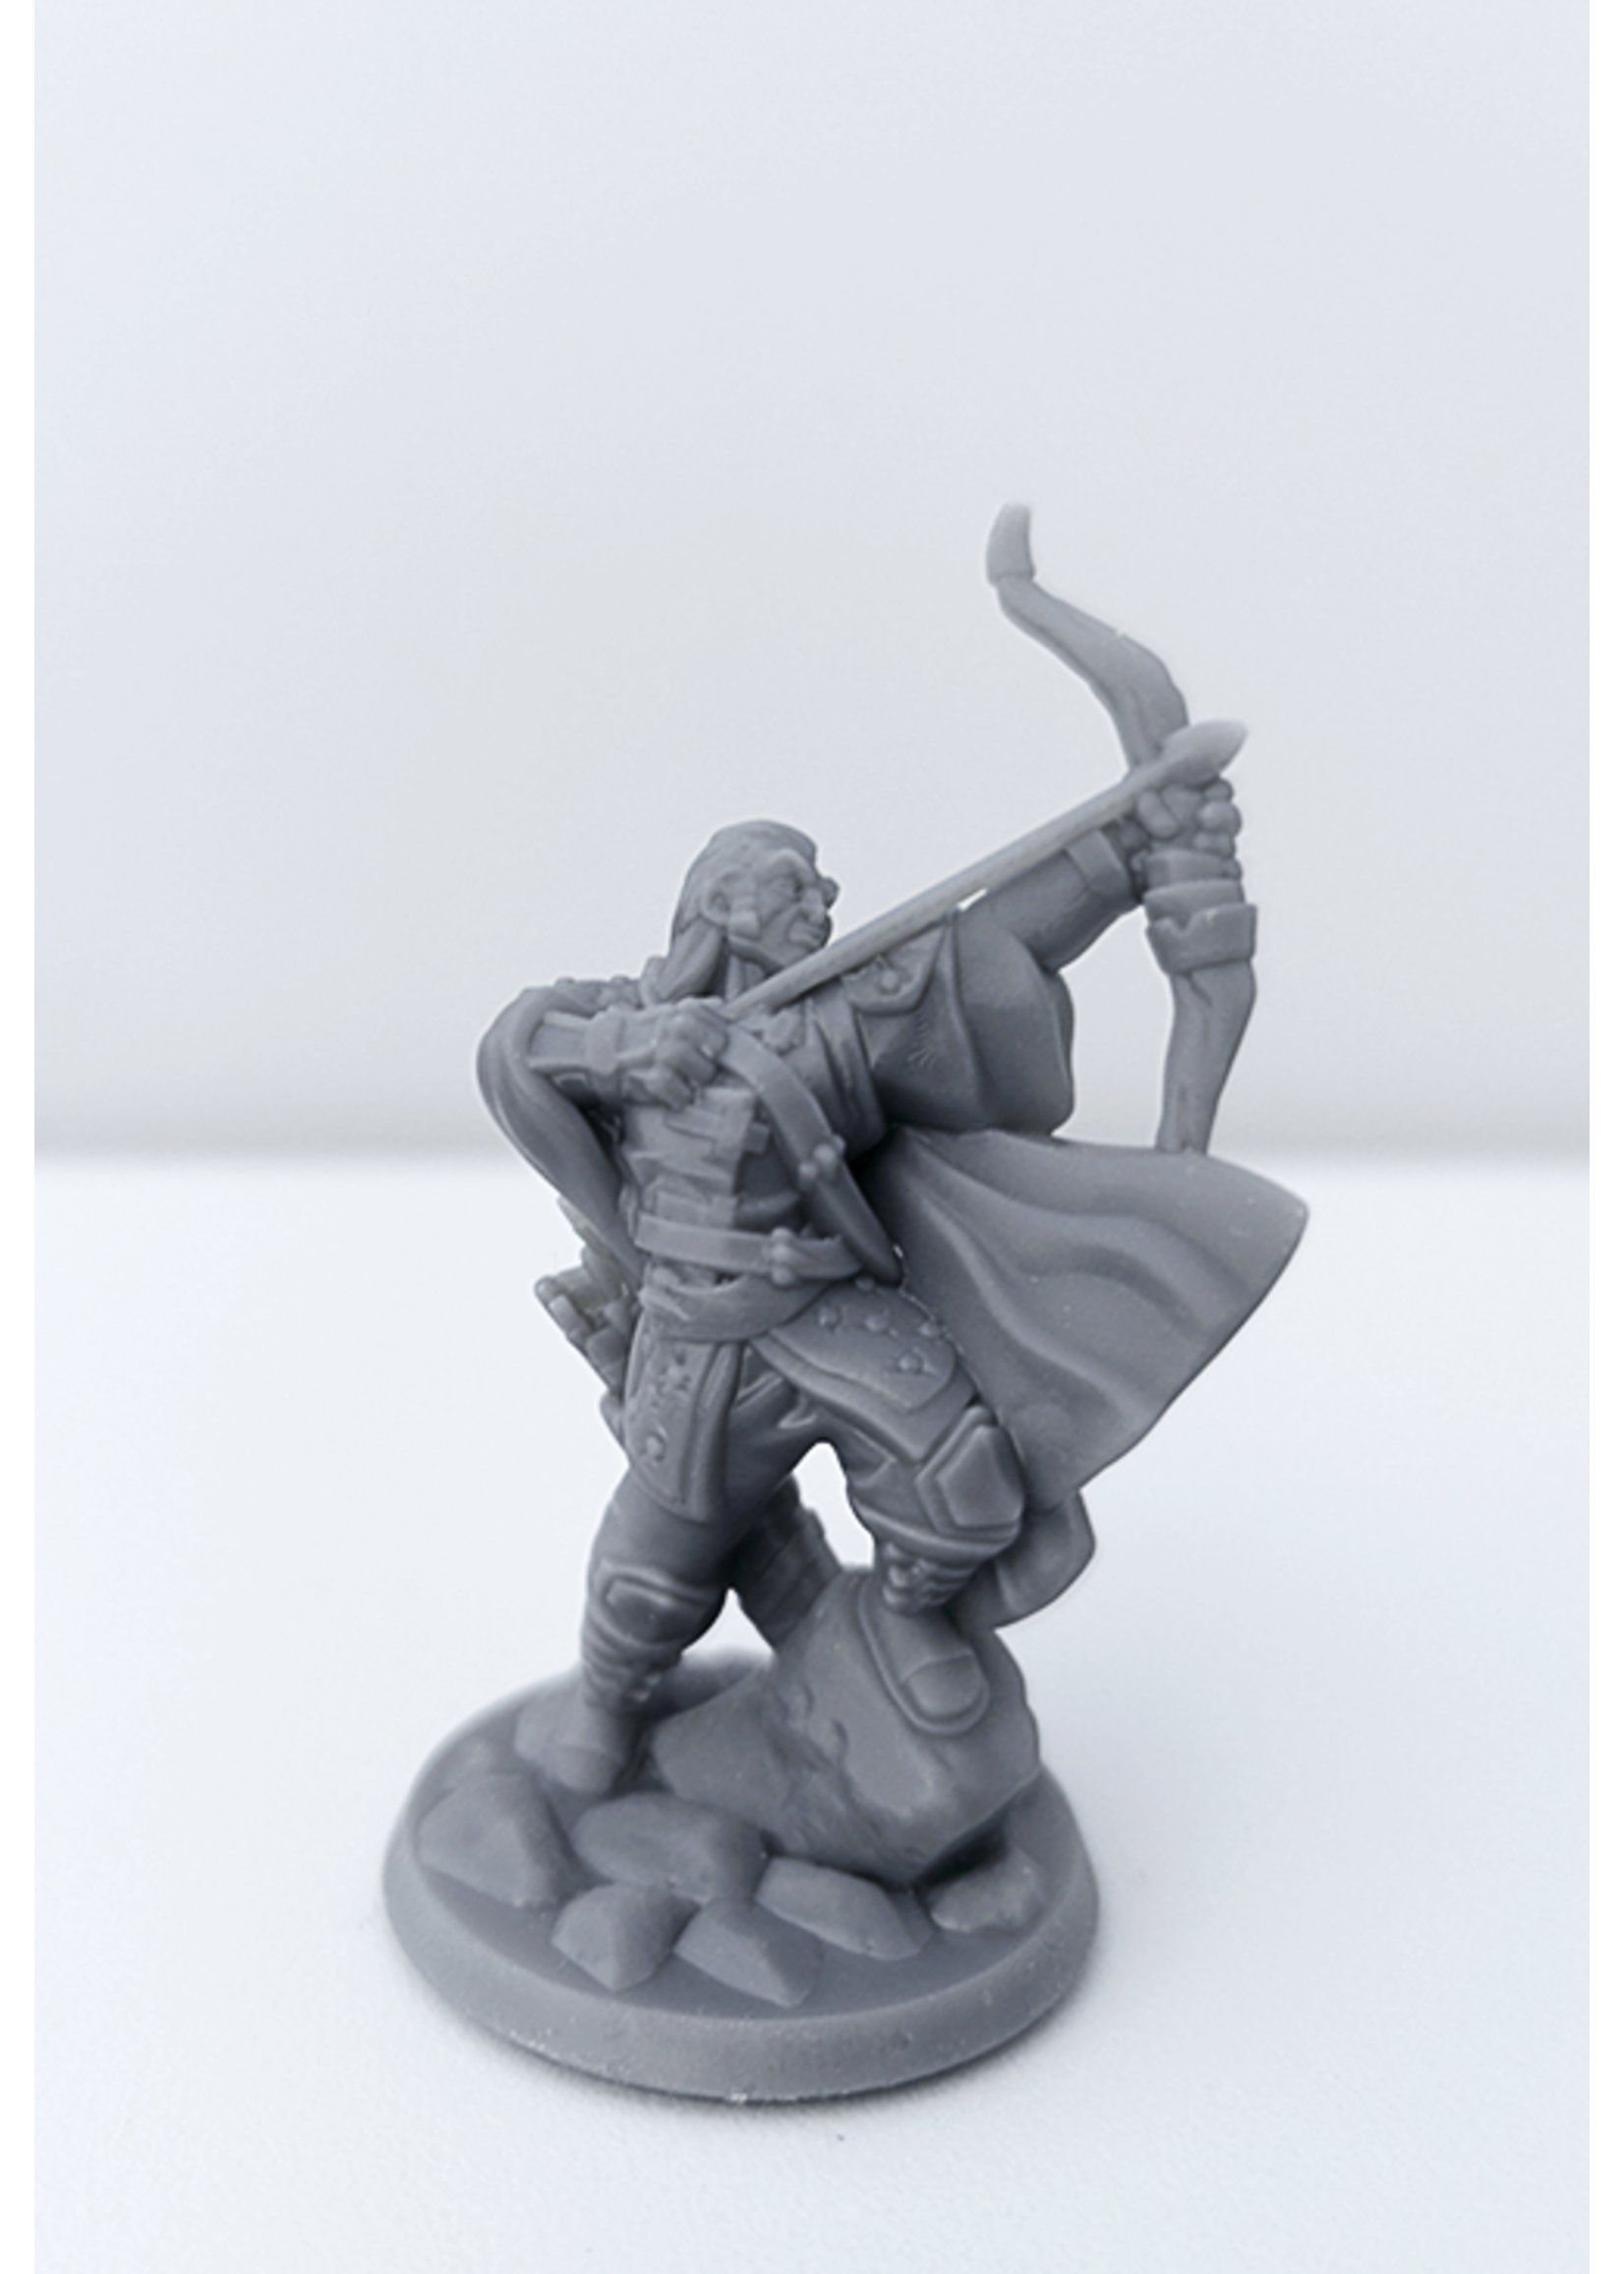 3D Printed Miniature - Ranger Male 01 - Dungeons & Dragons - Hero of the Realm KS